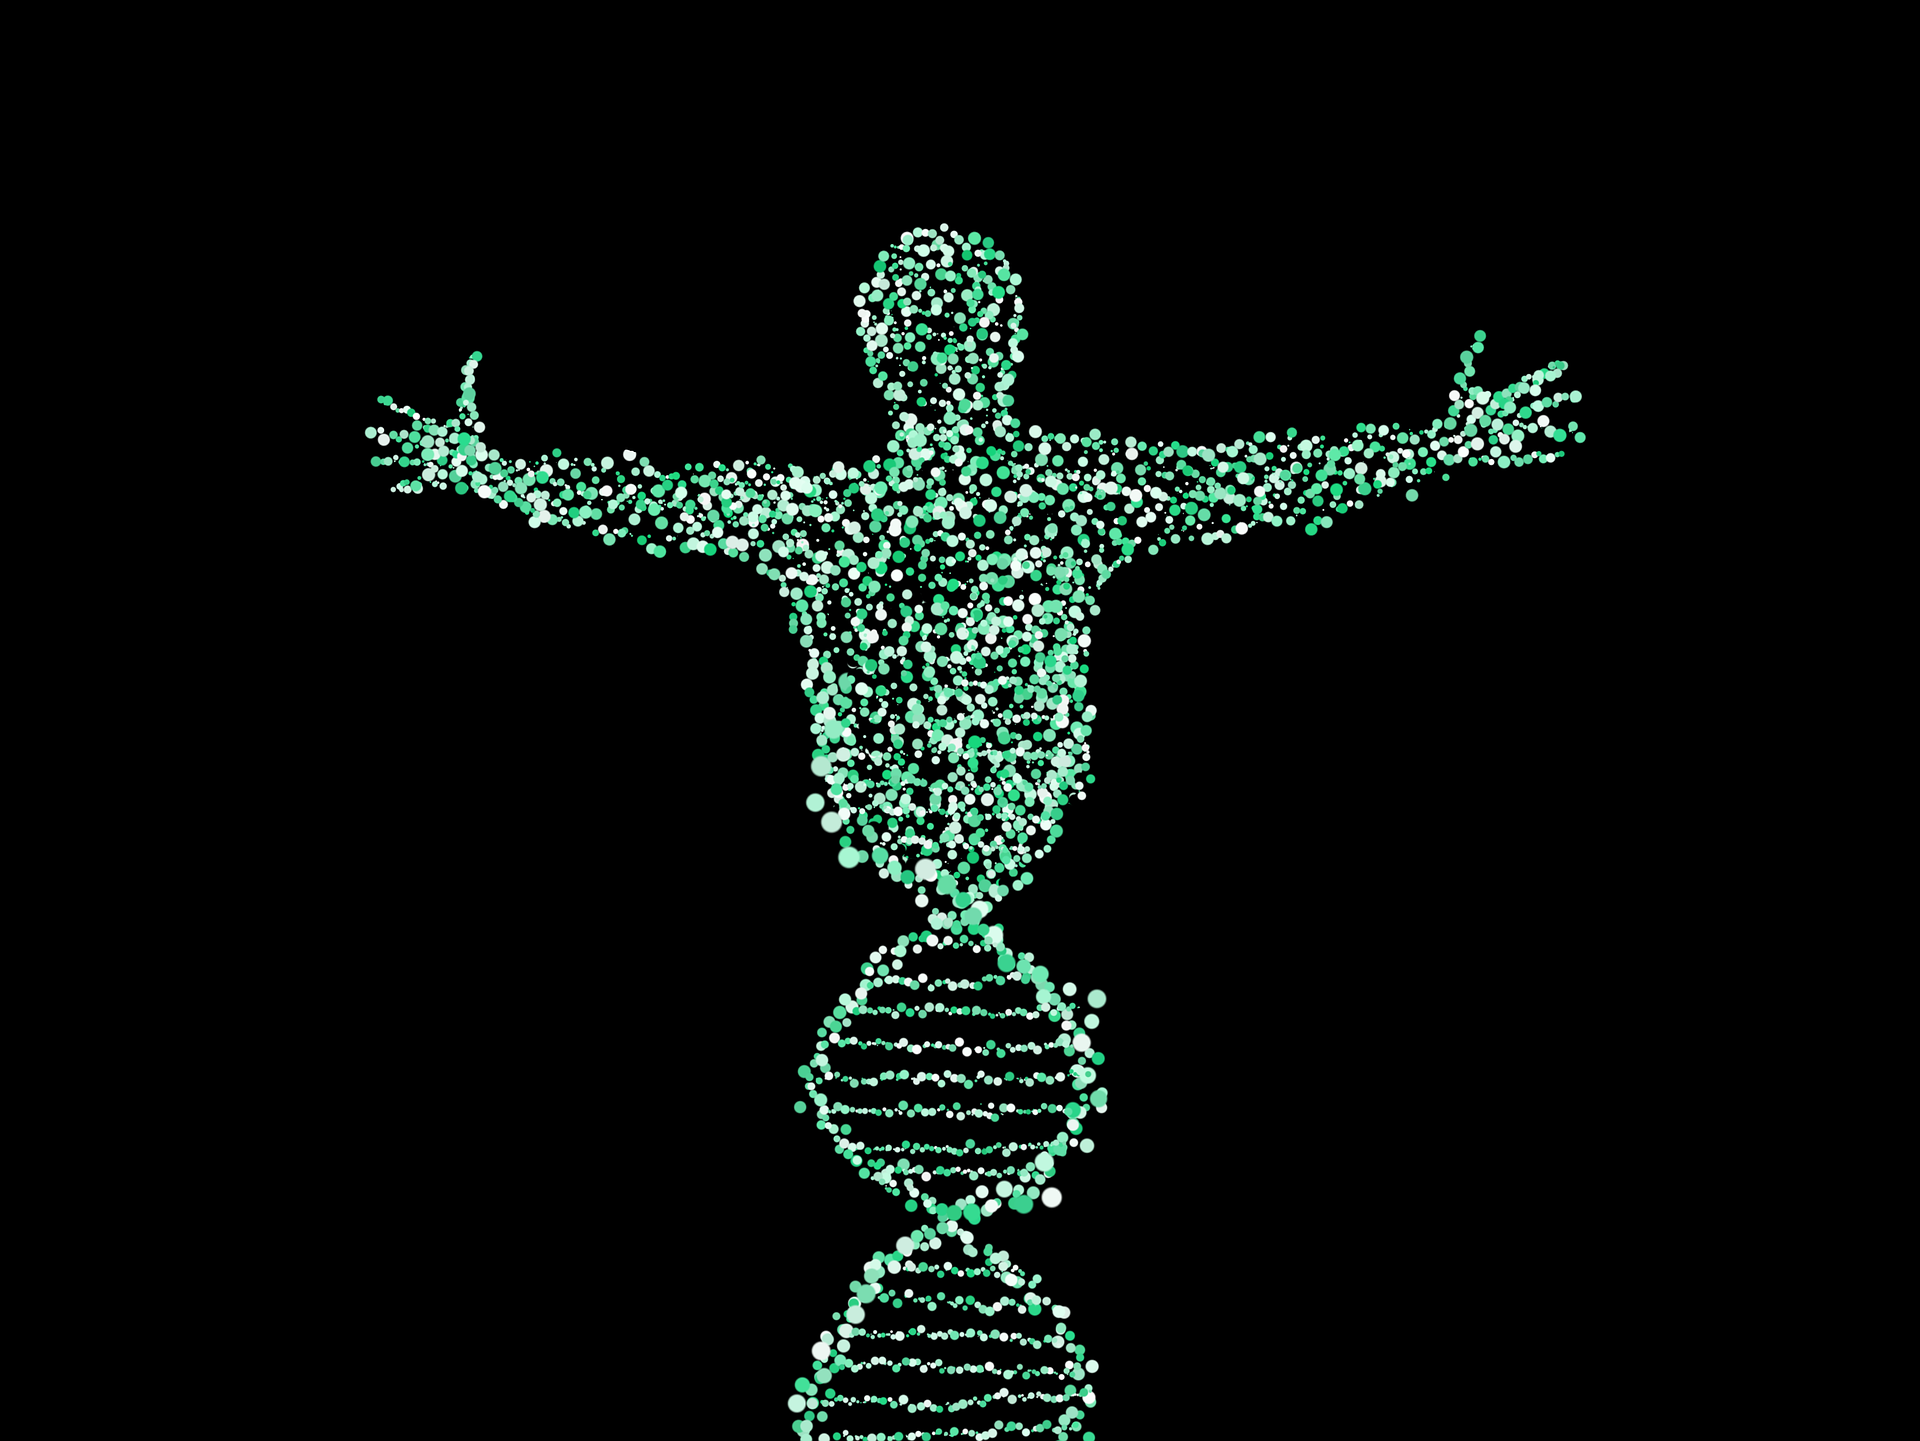 We must nurture reason, not faith, in DNA profiling technology to be able to hold the legislature and the executive to standards higher than their own confidence and interests. Credit: NeuPaddy/pixabay